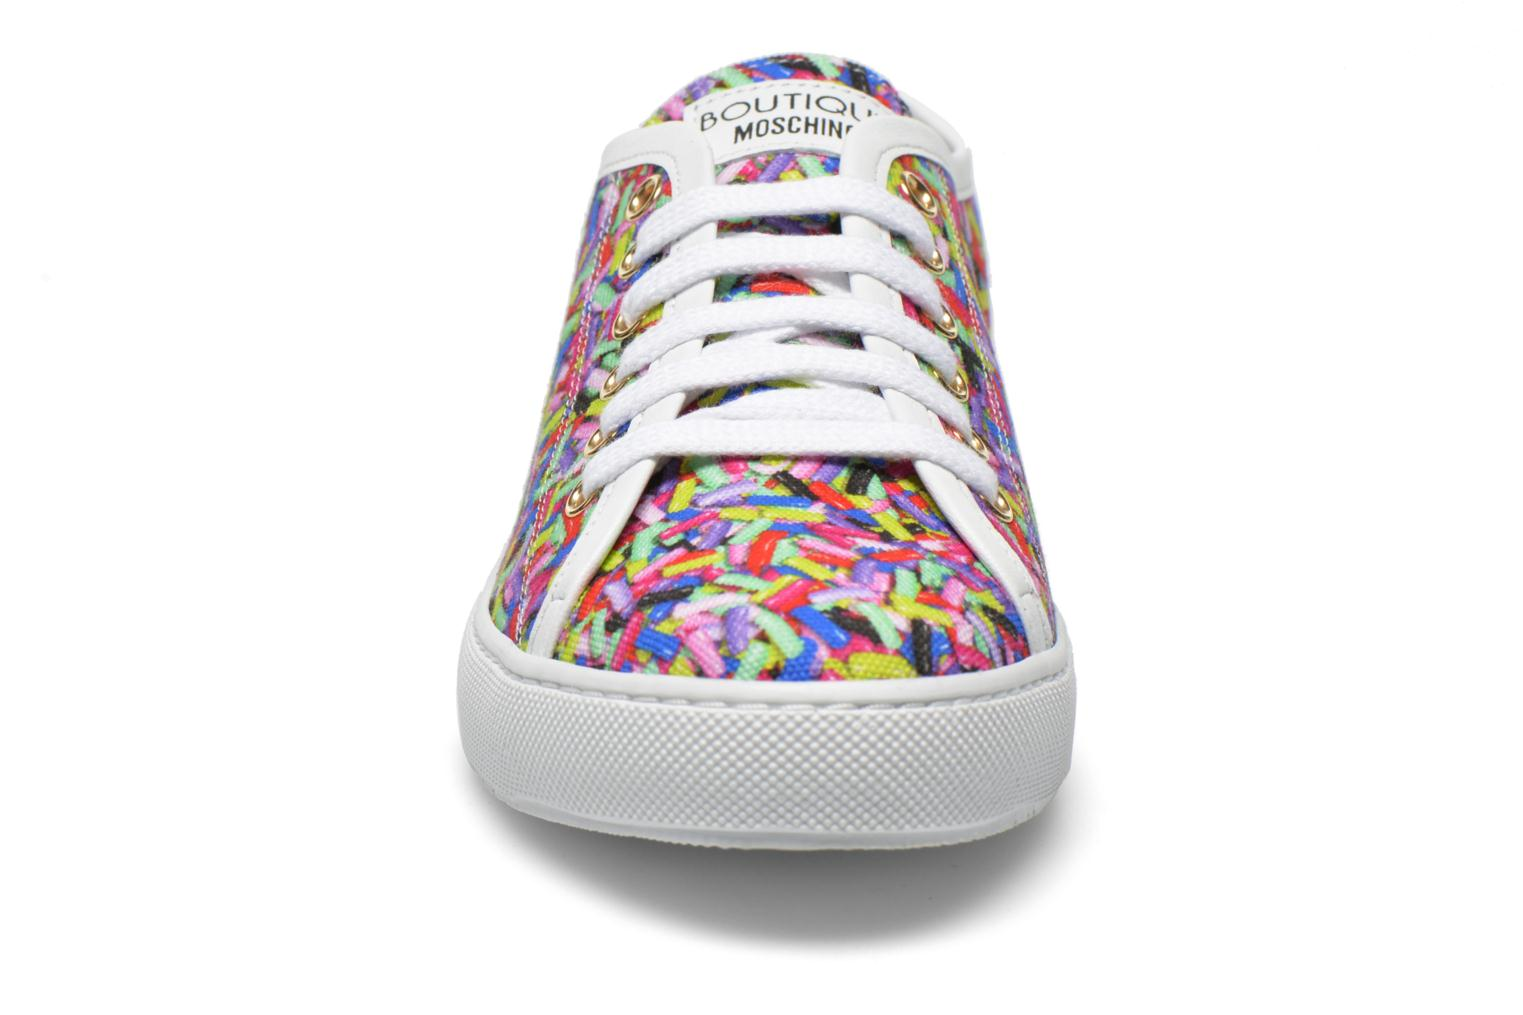 Baskets Boutique Moschino Sneaker candy Multicolore vue portées chaussures